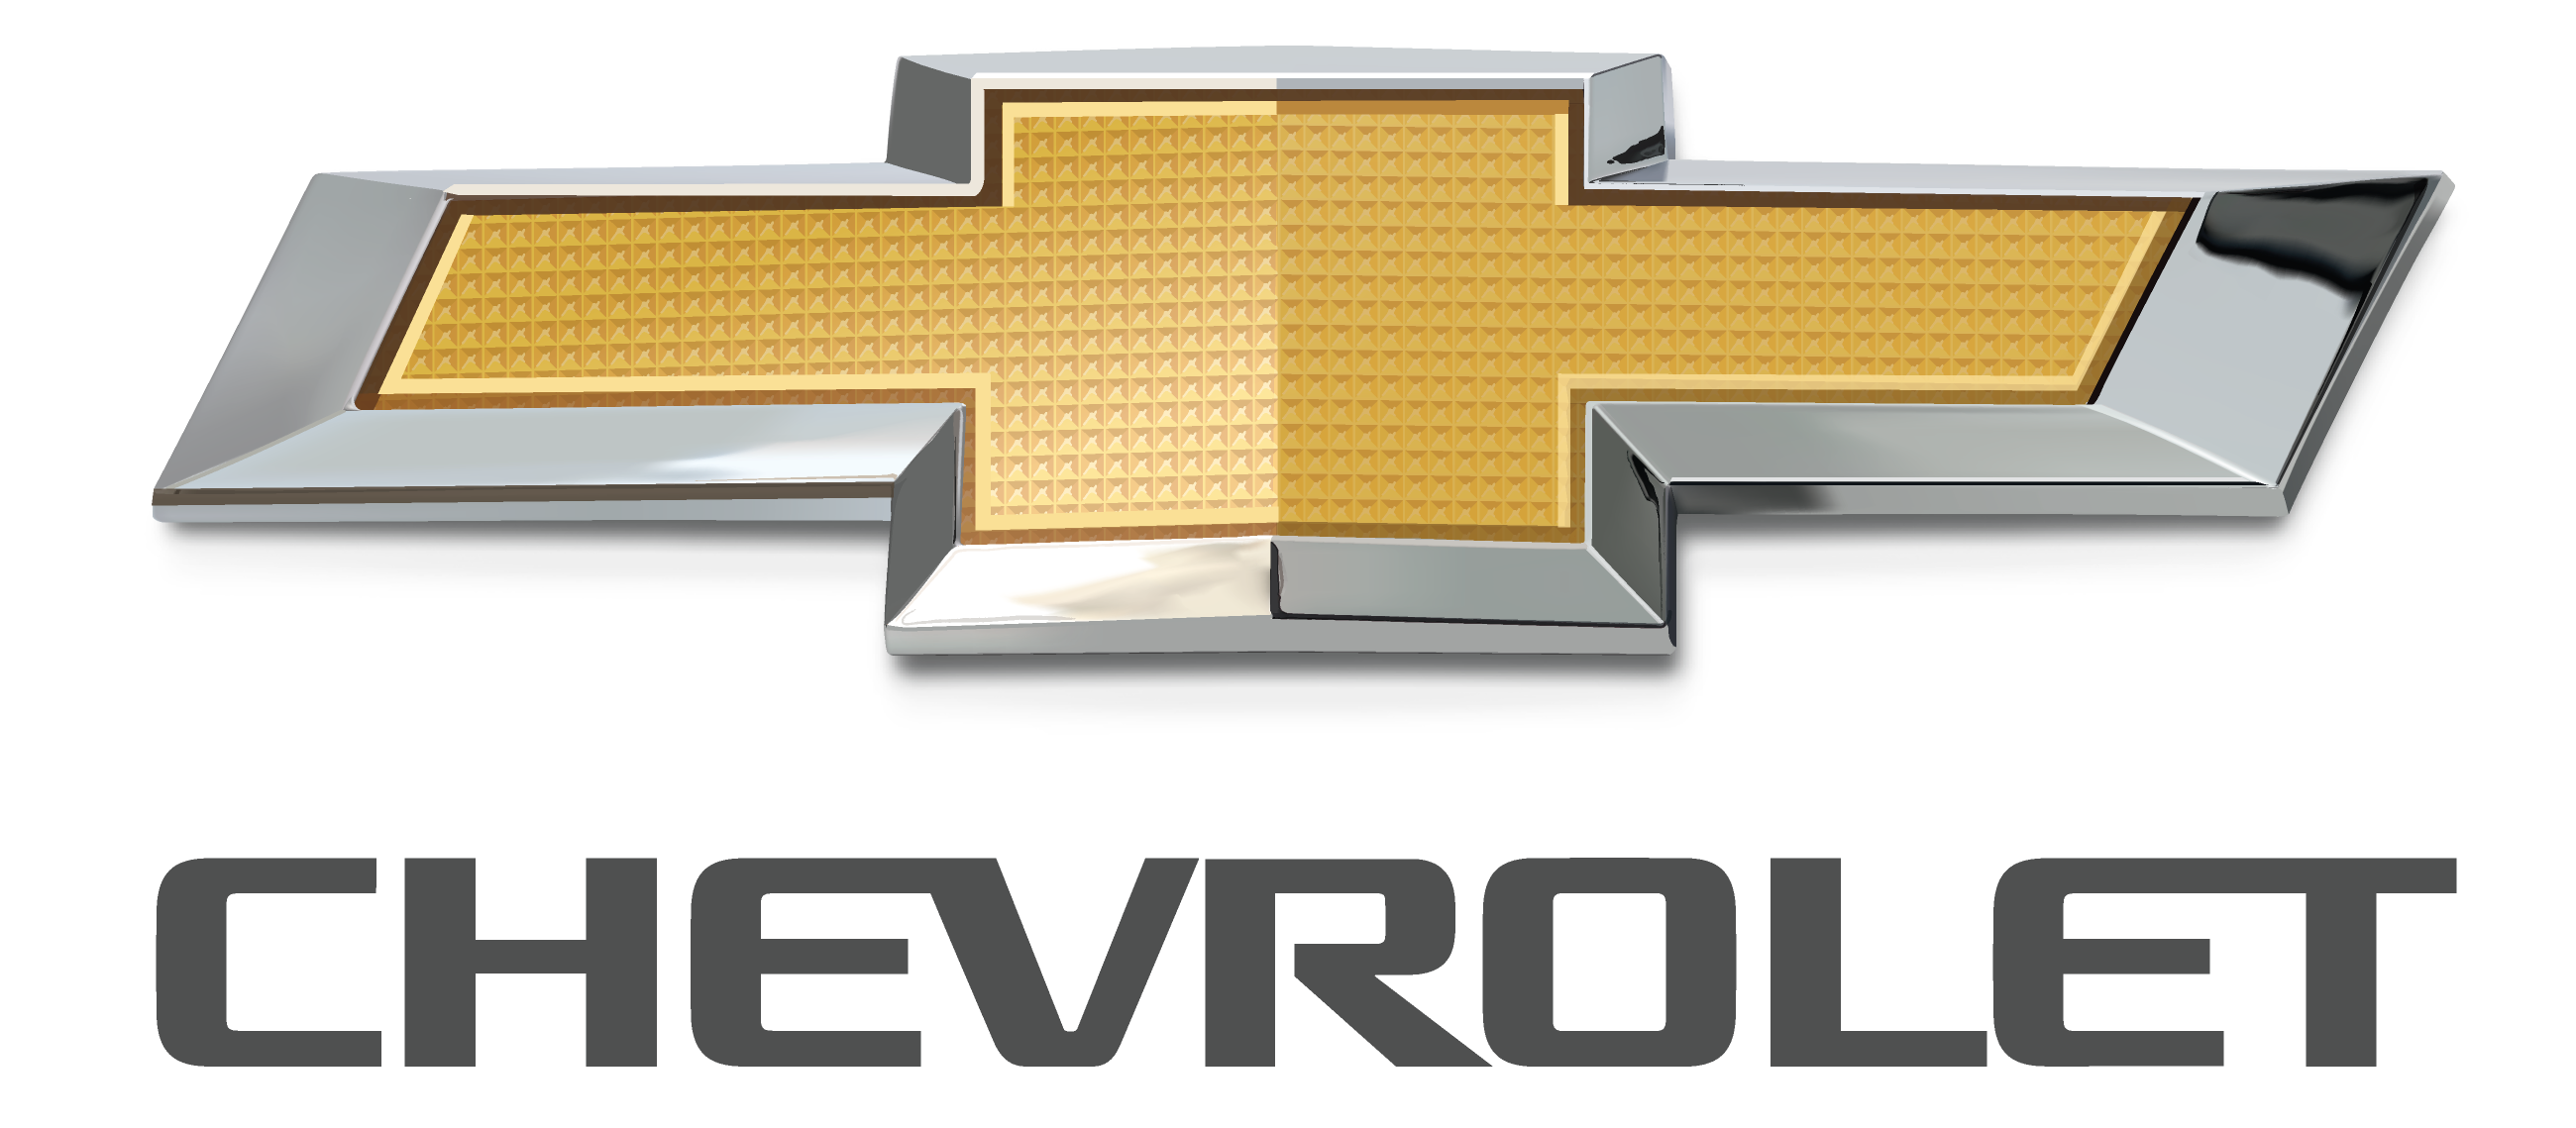 Chevrolet vector transparent background. Index of images admin